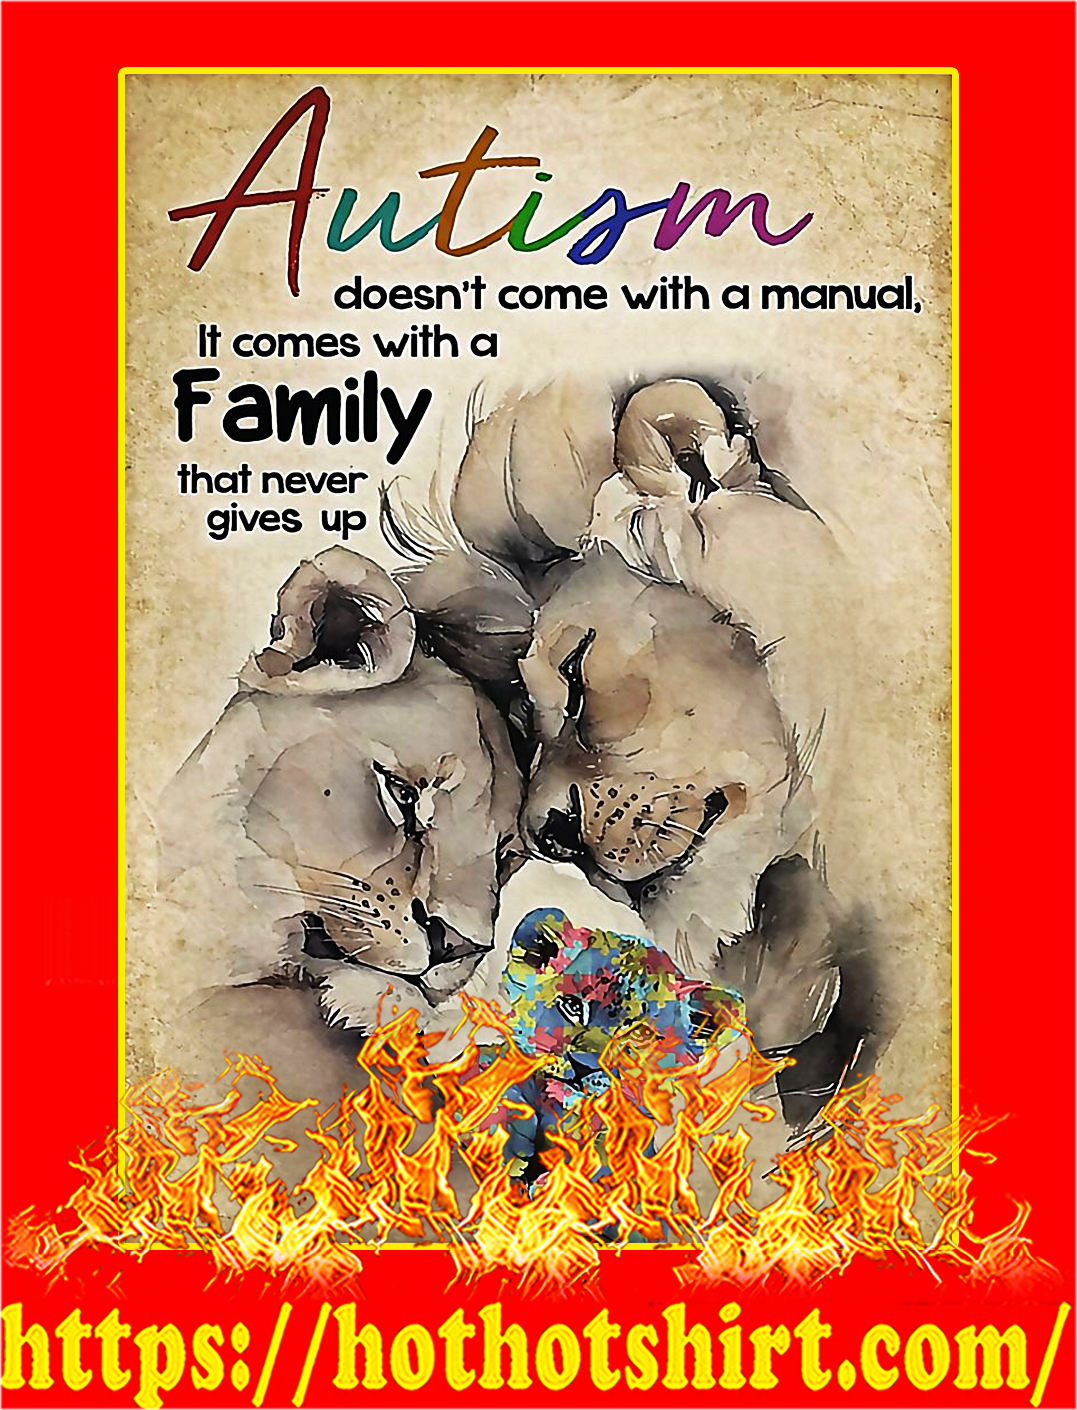 Lion Autism doen't come with a manual it comes with a family that never gives up poster